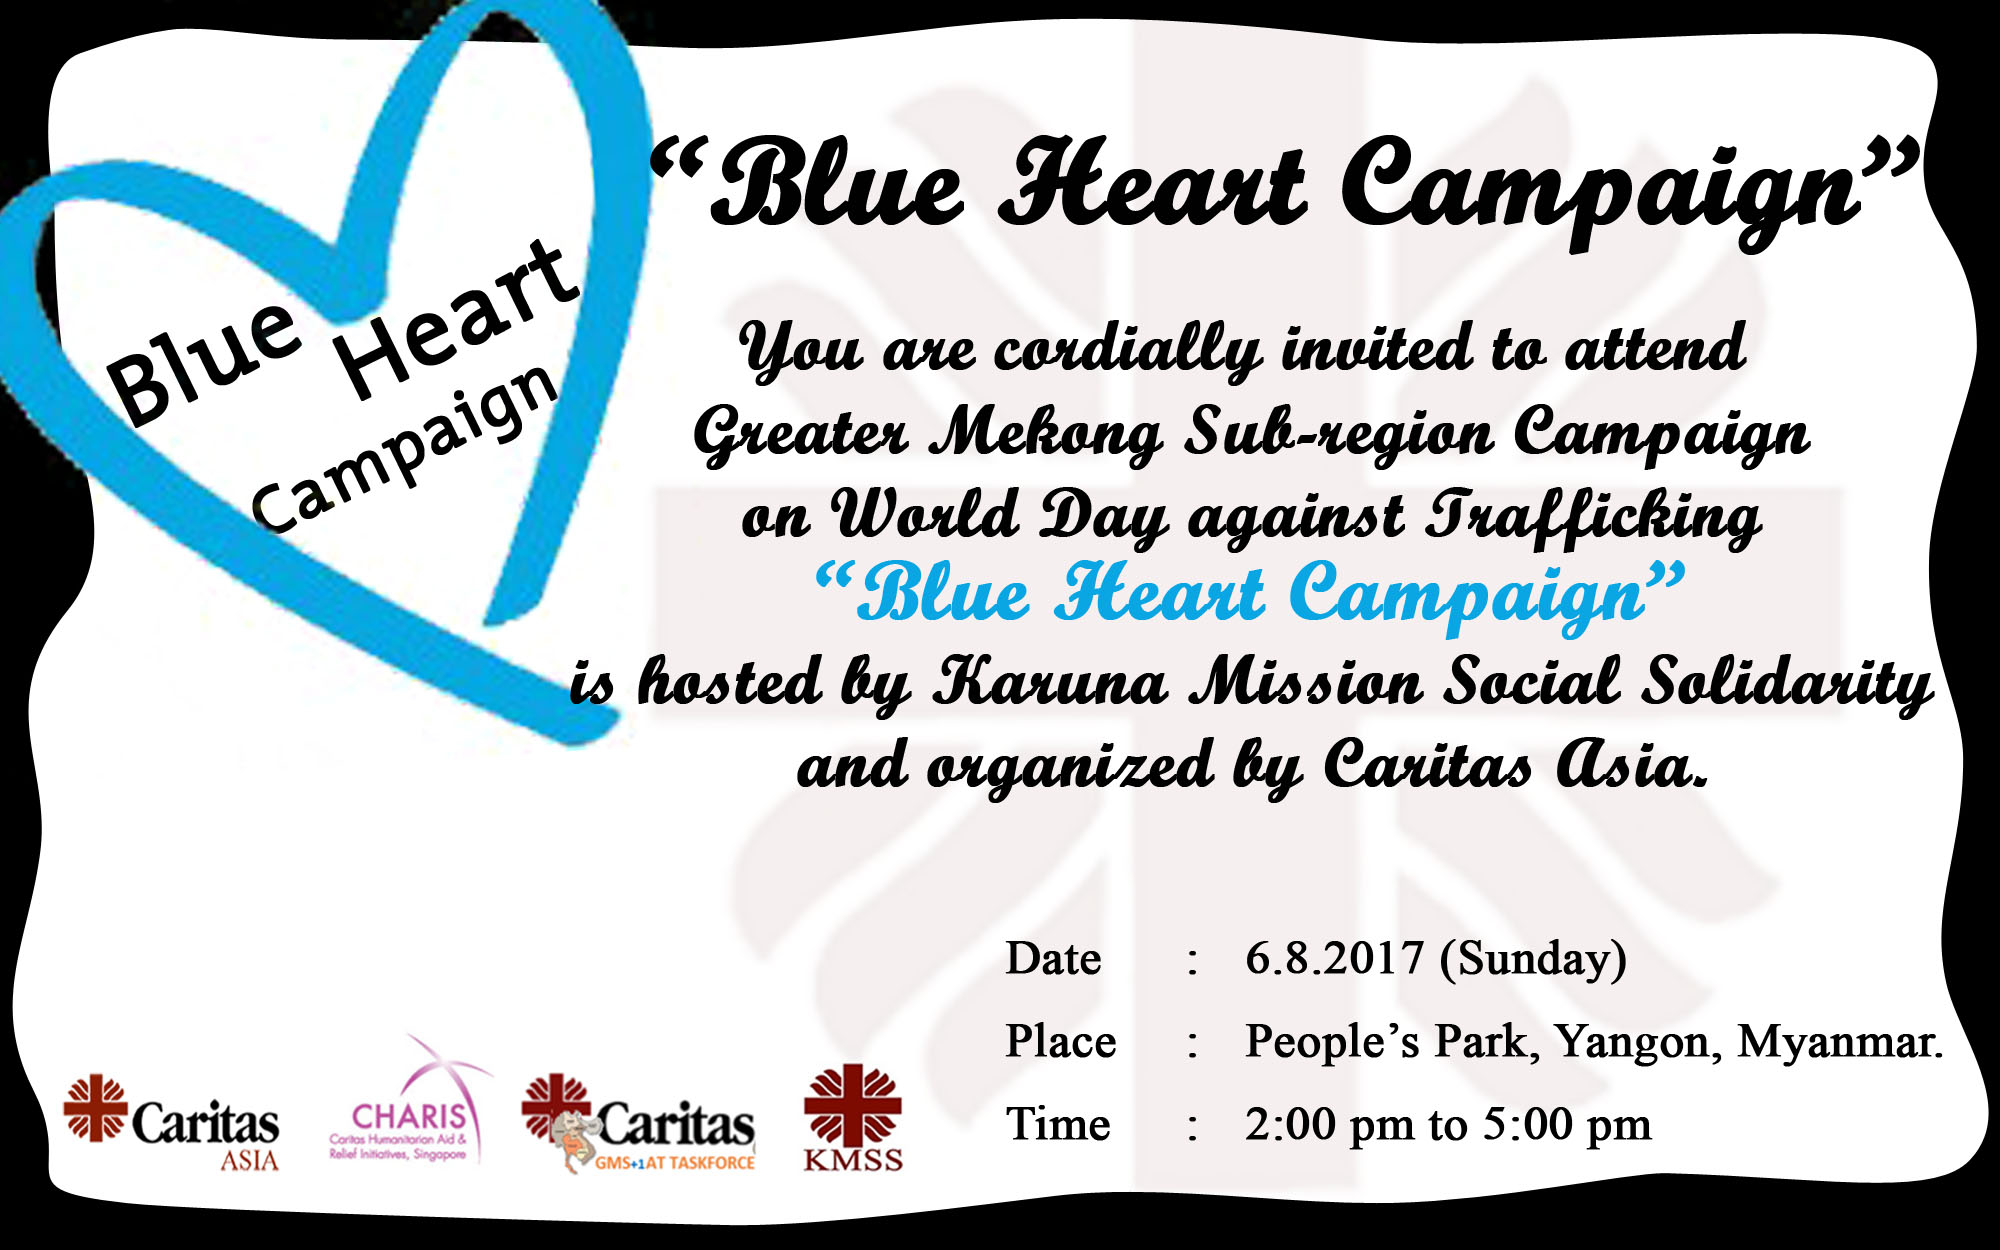 Blue Heart Campaign Campaign On World Day Against Trafficking